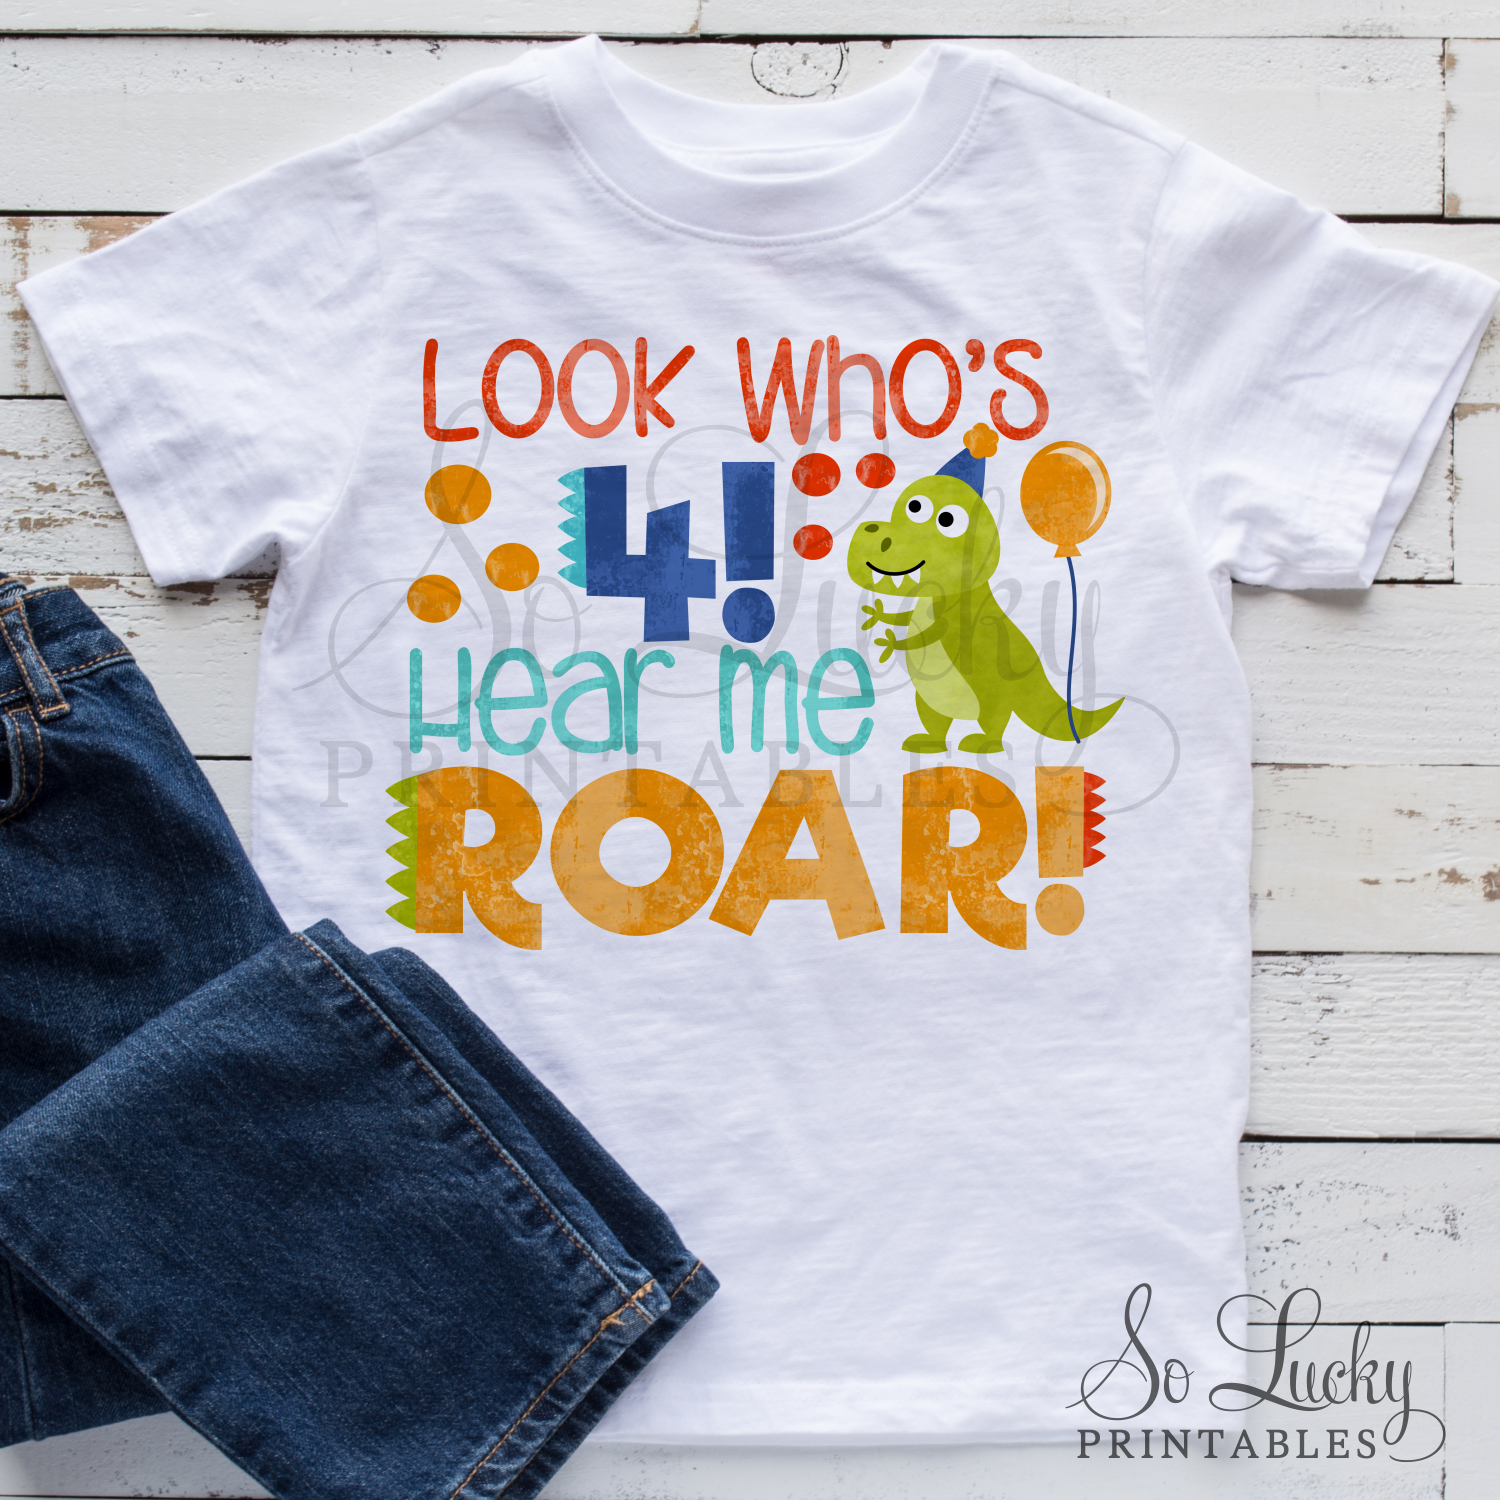 Look who's 4, hear me roar birthday sublimation design example image 2